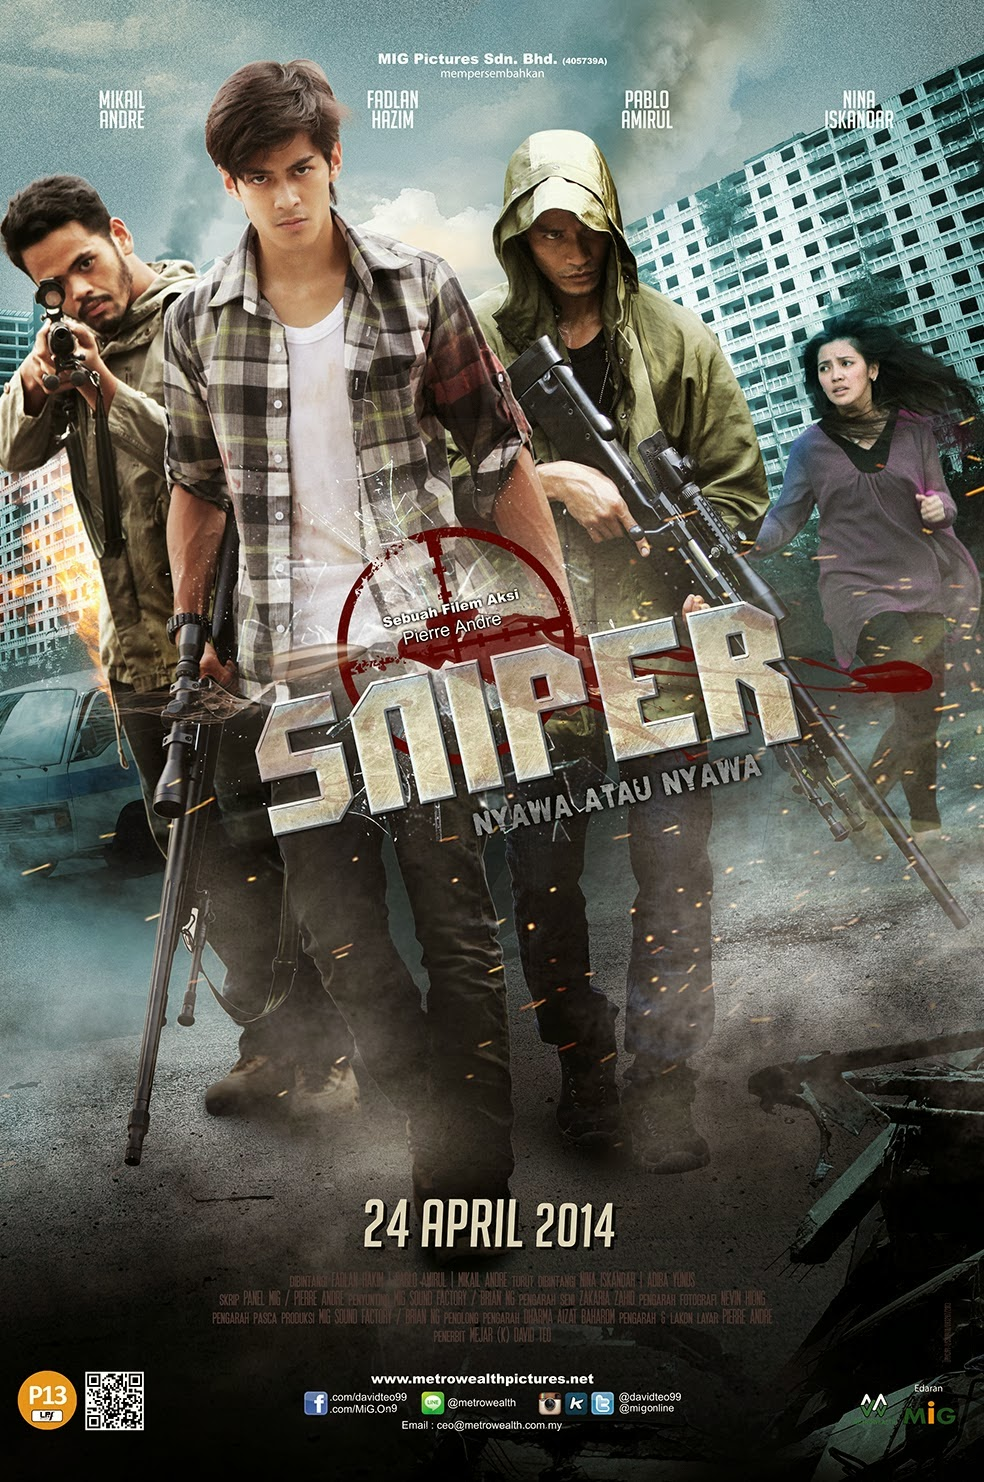 SNIPER nyawa atau nyawa full movie